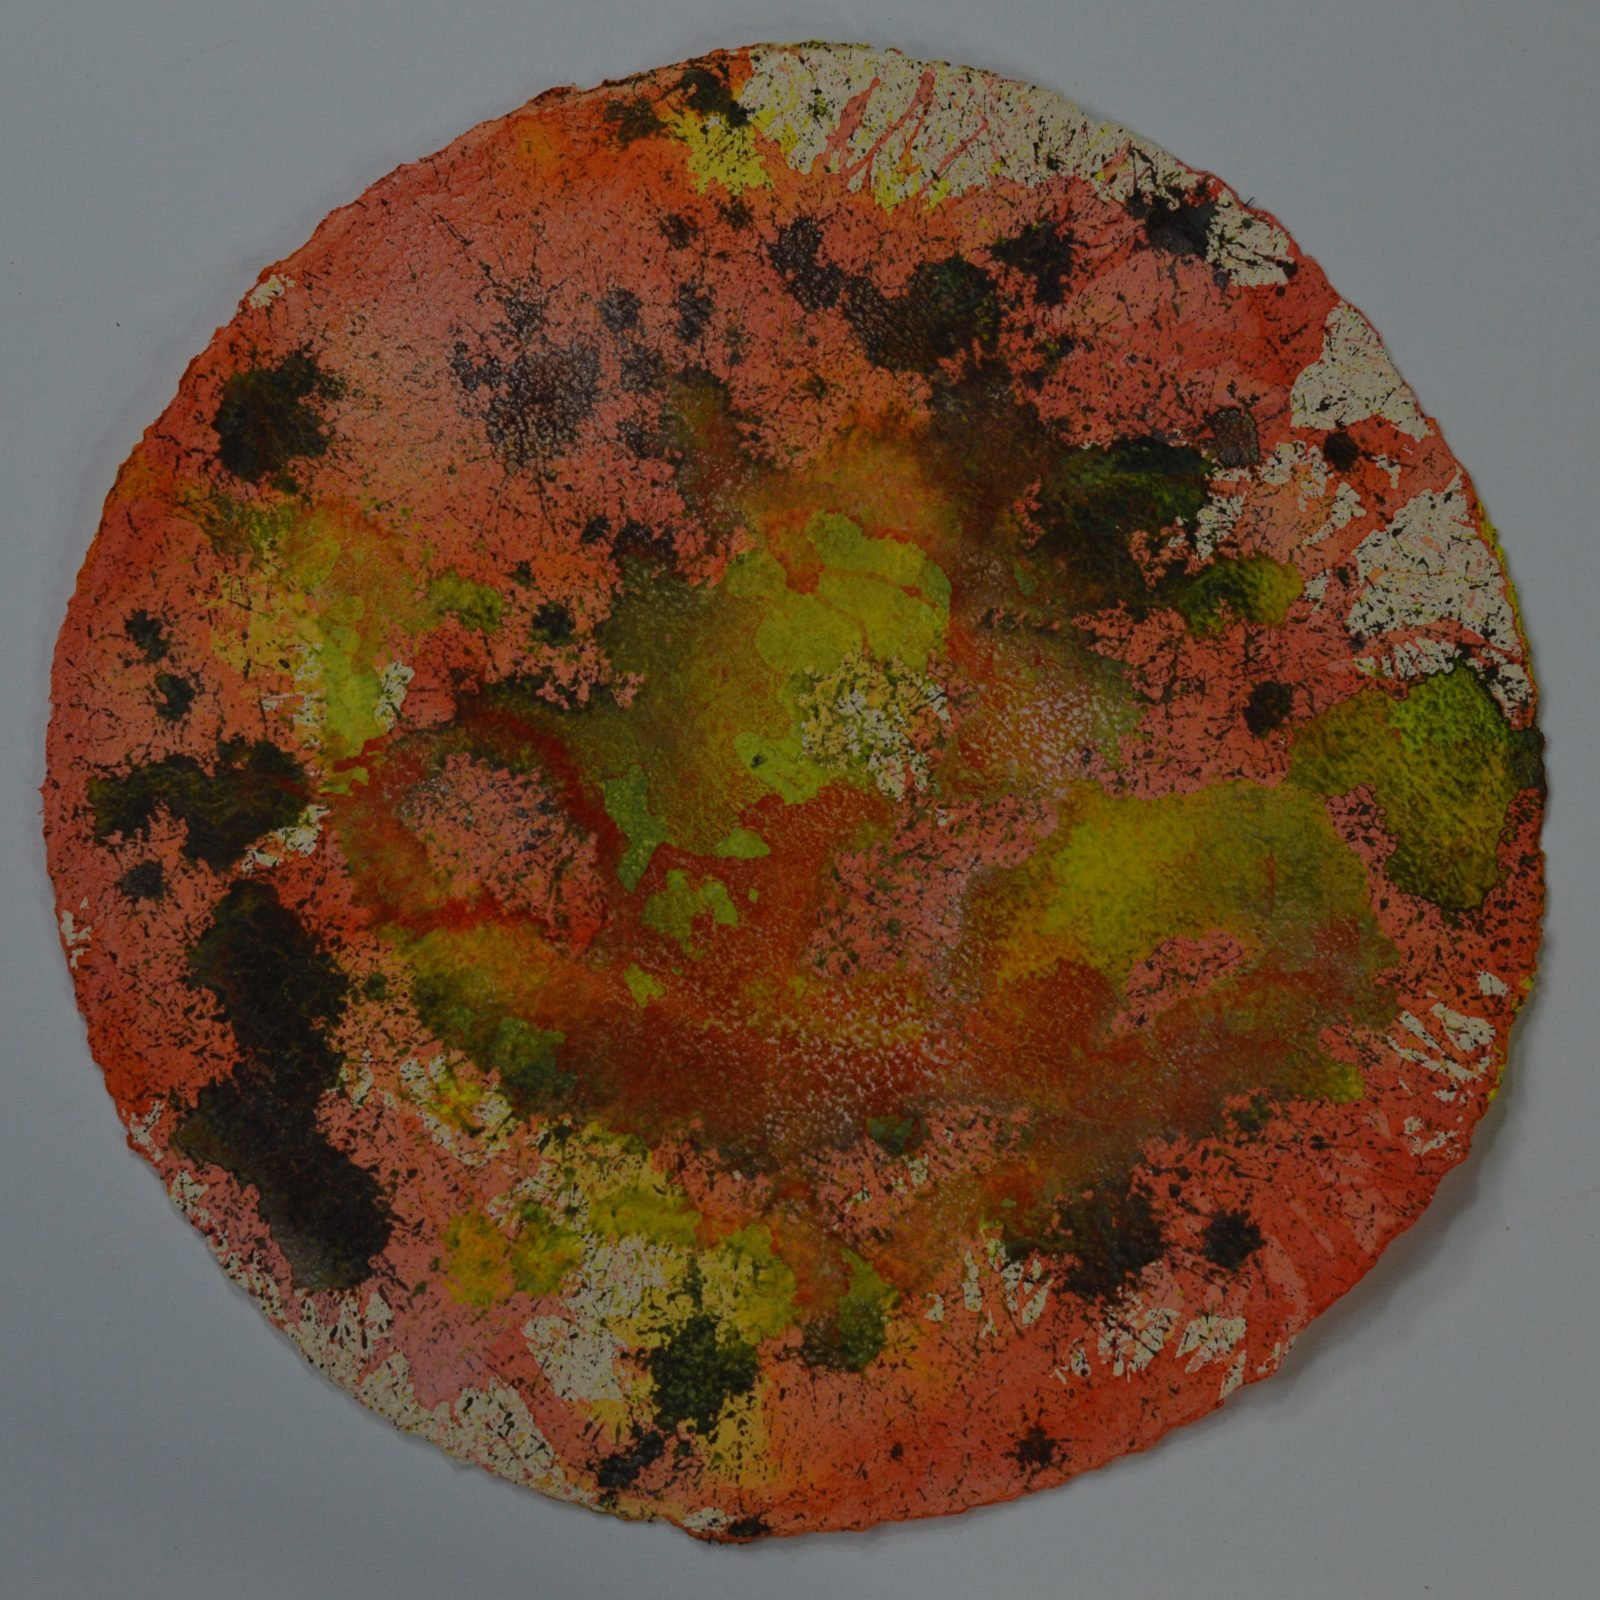 Ginan is a bright abstract painting fizzing with vermilion, lemon yellow, acid green and spots of oxide black. Painted on a 50cm circle of Moulin de Larroque, Ginan is part of The Day the Sky Shattered and Flew Away series.